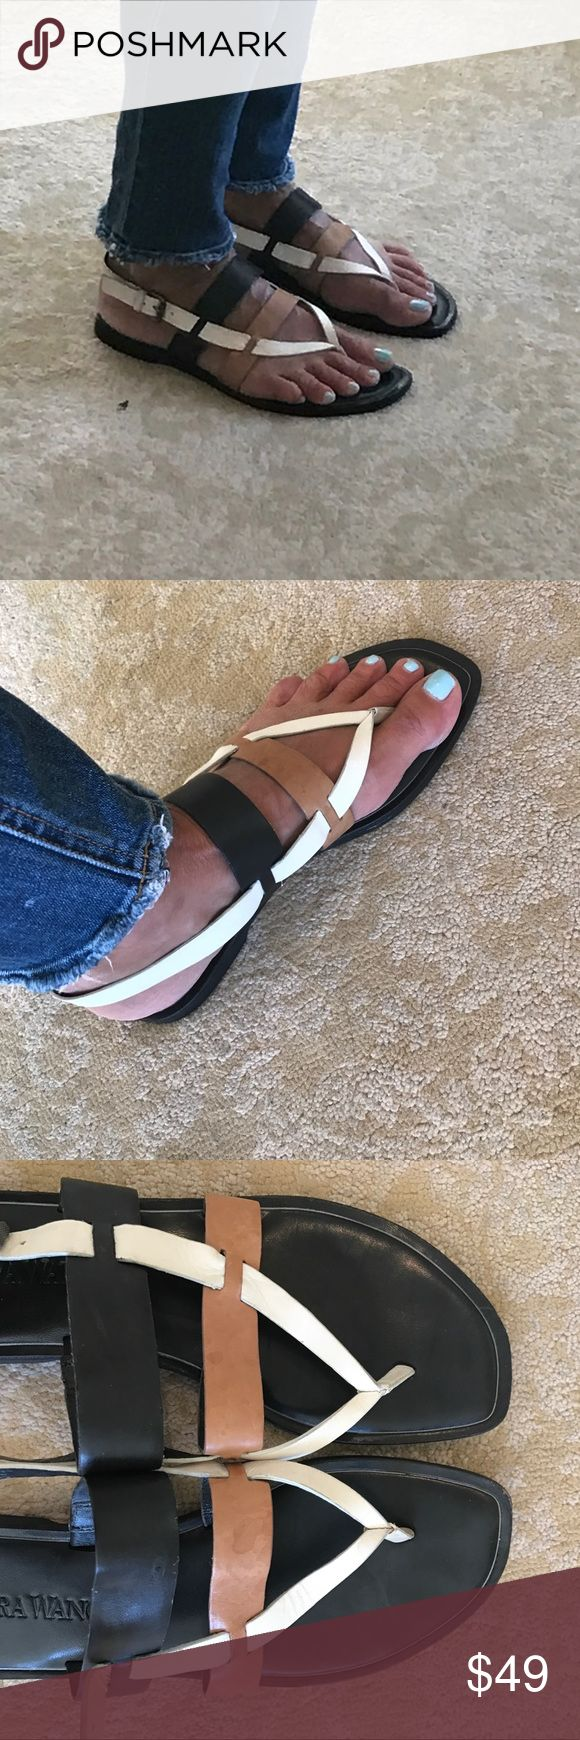 Vera Wang Annie Cream/Multi Sandal Size 8.5 Very good condition. When on your feet they look amazing. Close up you can see they show some wear. As picture show the front has a slight scuff. The tan has a few marks. Nothing terrible. Especially when worn. Honestly I have only worn these a few times. They are so comfortable. Black camel and white go with everything. I have original box. Purchased at Nordstroms. Perfect for today!! Vera Wang Shoes